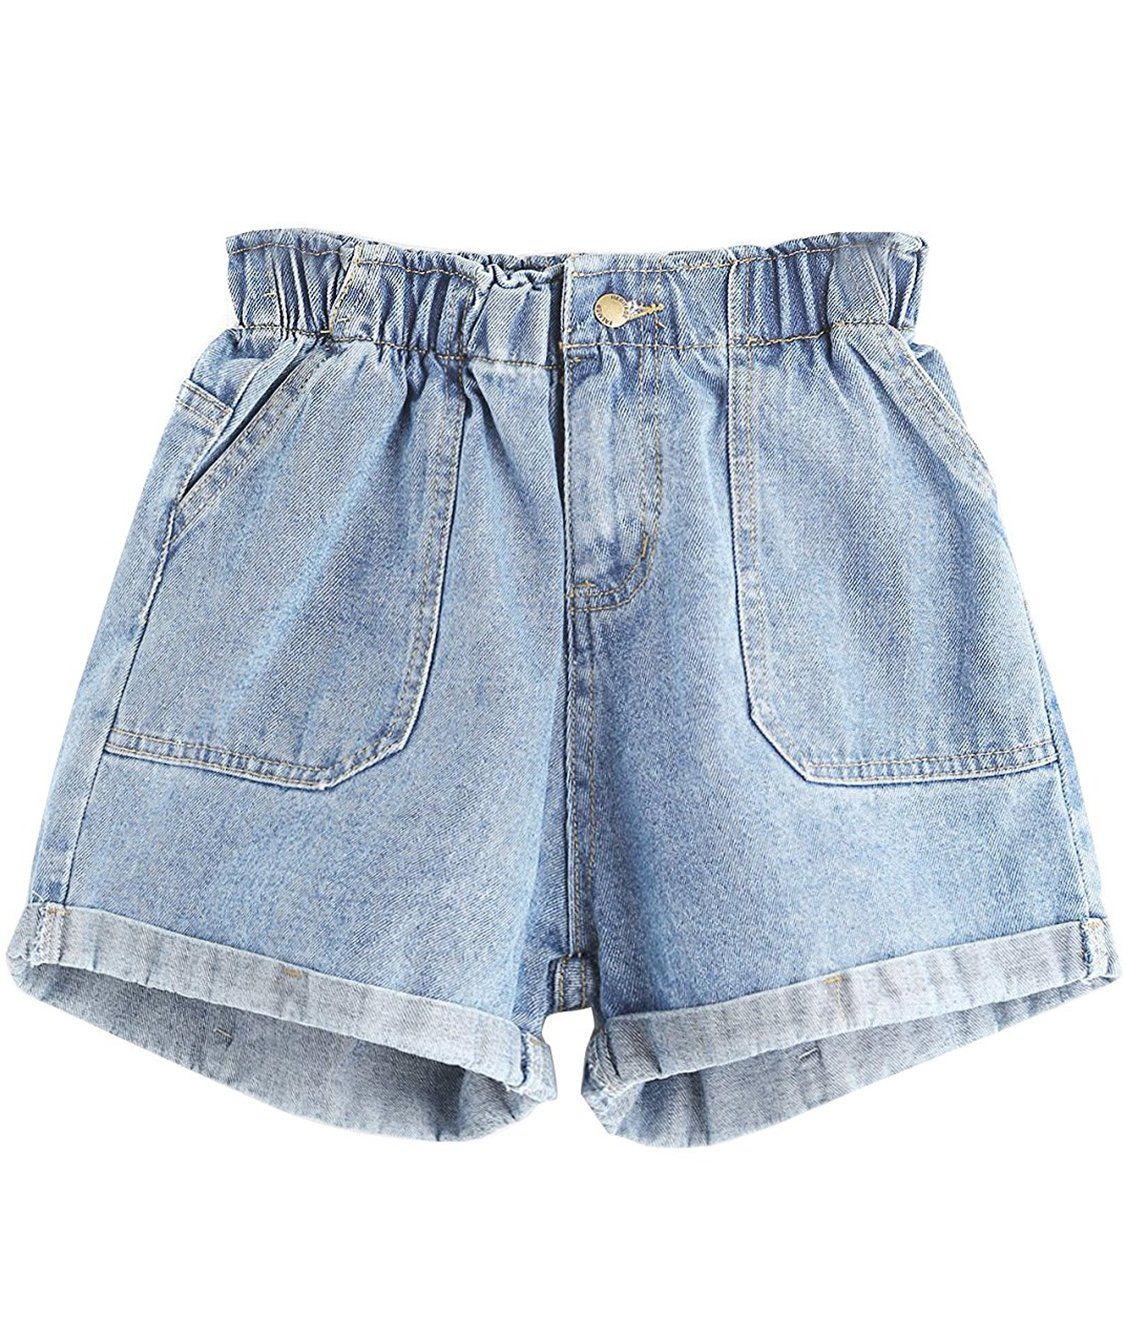 Floerns Womens' Elastic Waist Summer Denim Shorts Jeans Blue XL